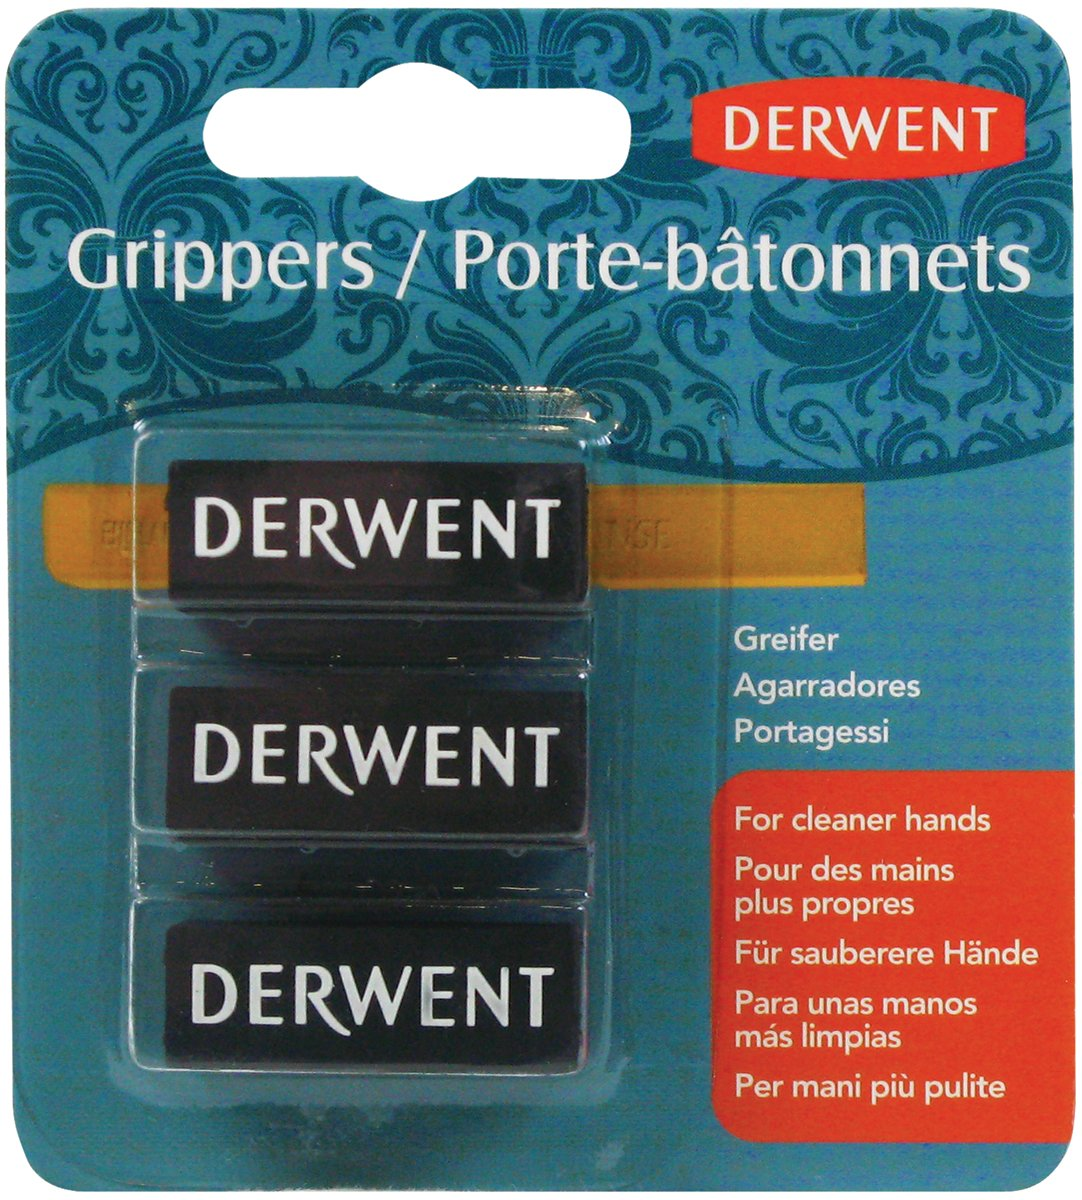 Derwent Grippers, Small, Pack, 3 Count (2300449) ACCO Brands